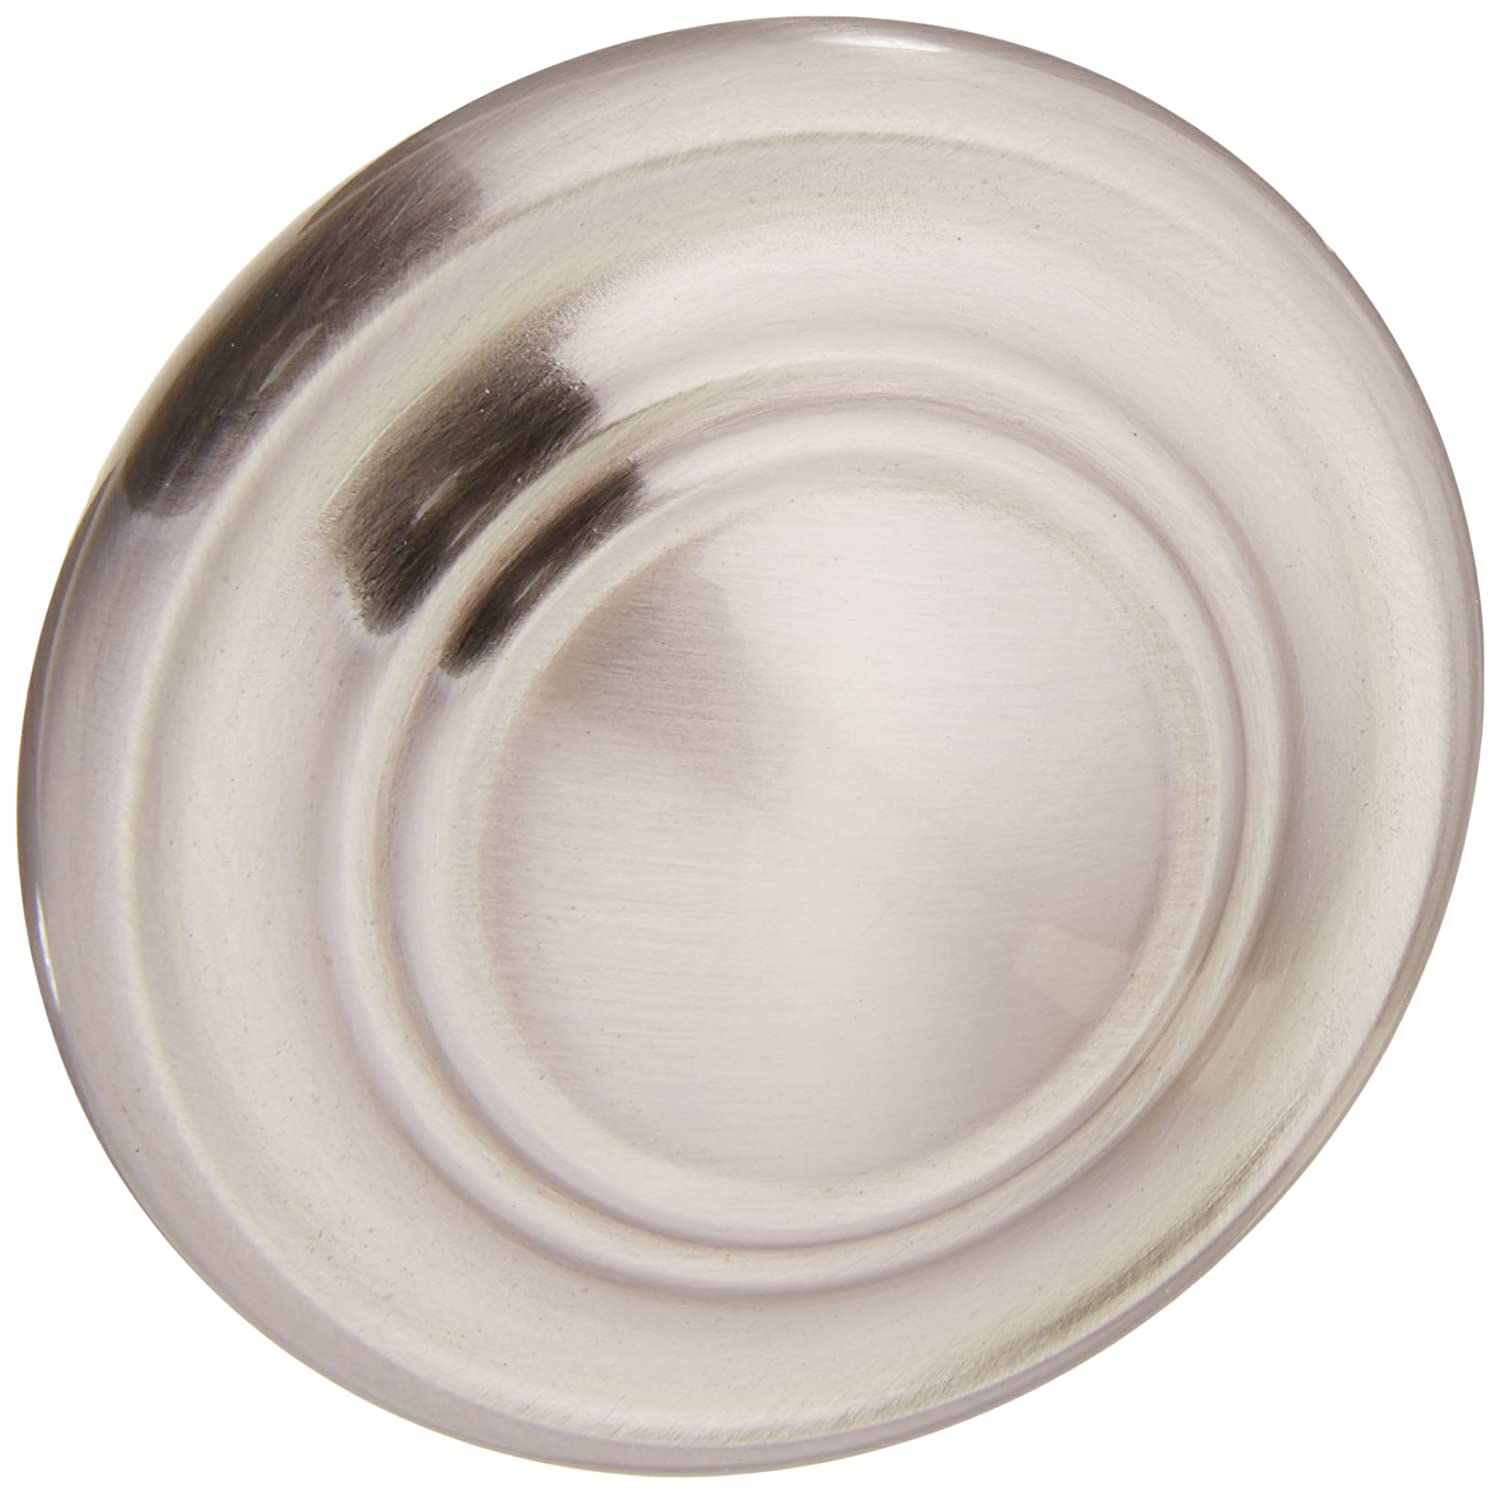 Amerock BP1586-2-G10 Inspirations 3-Ring Large Oversized 1-3/4 Inch Diameter Satin Nickel Round Cabinet Hardware Knob/Bi-fold Closet Door Knob - 10 Pack